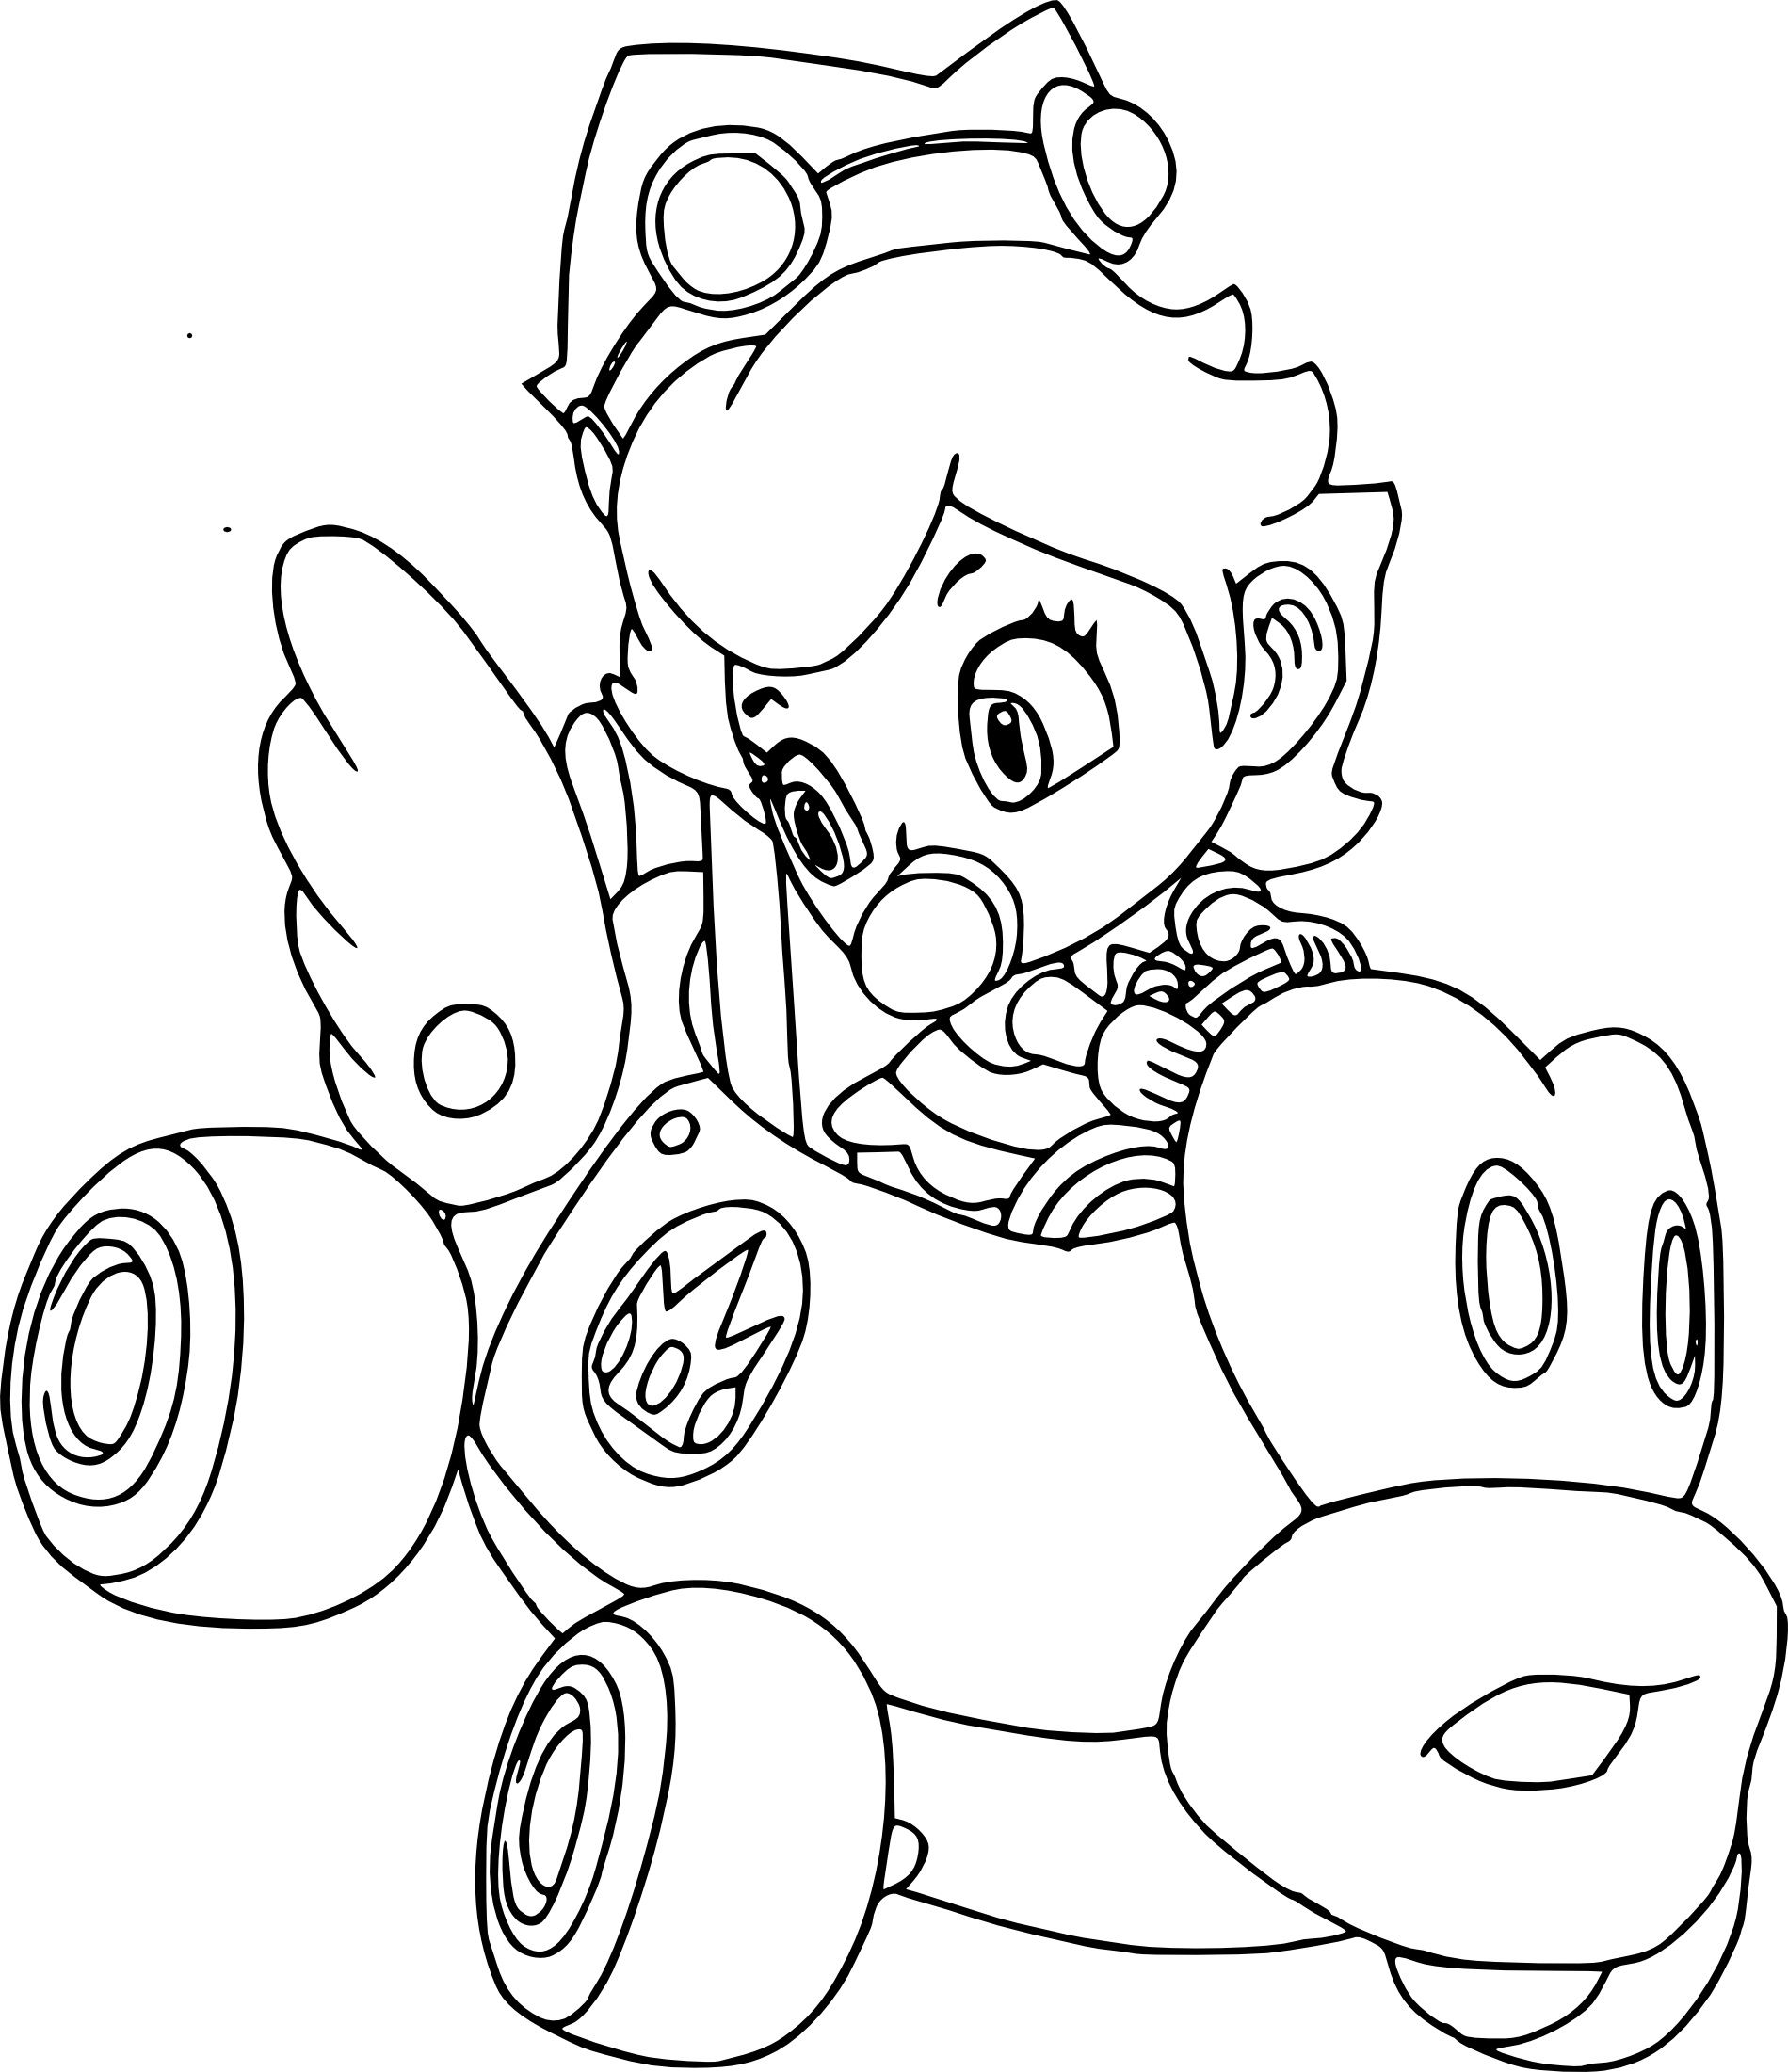 Mario Kart Peach Coloring Pages